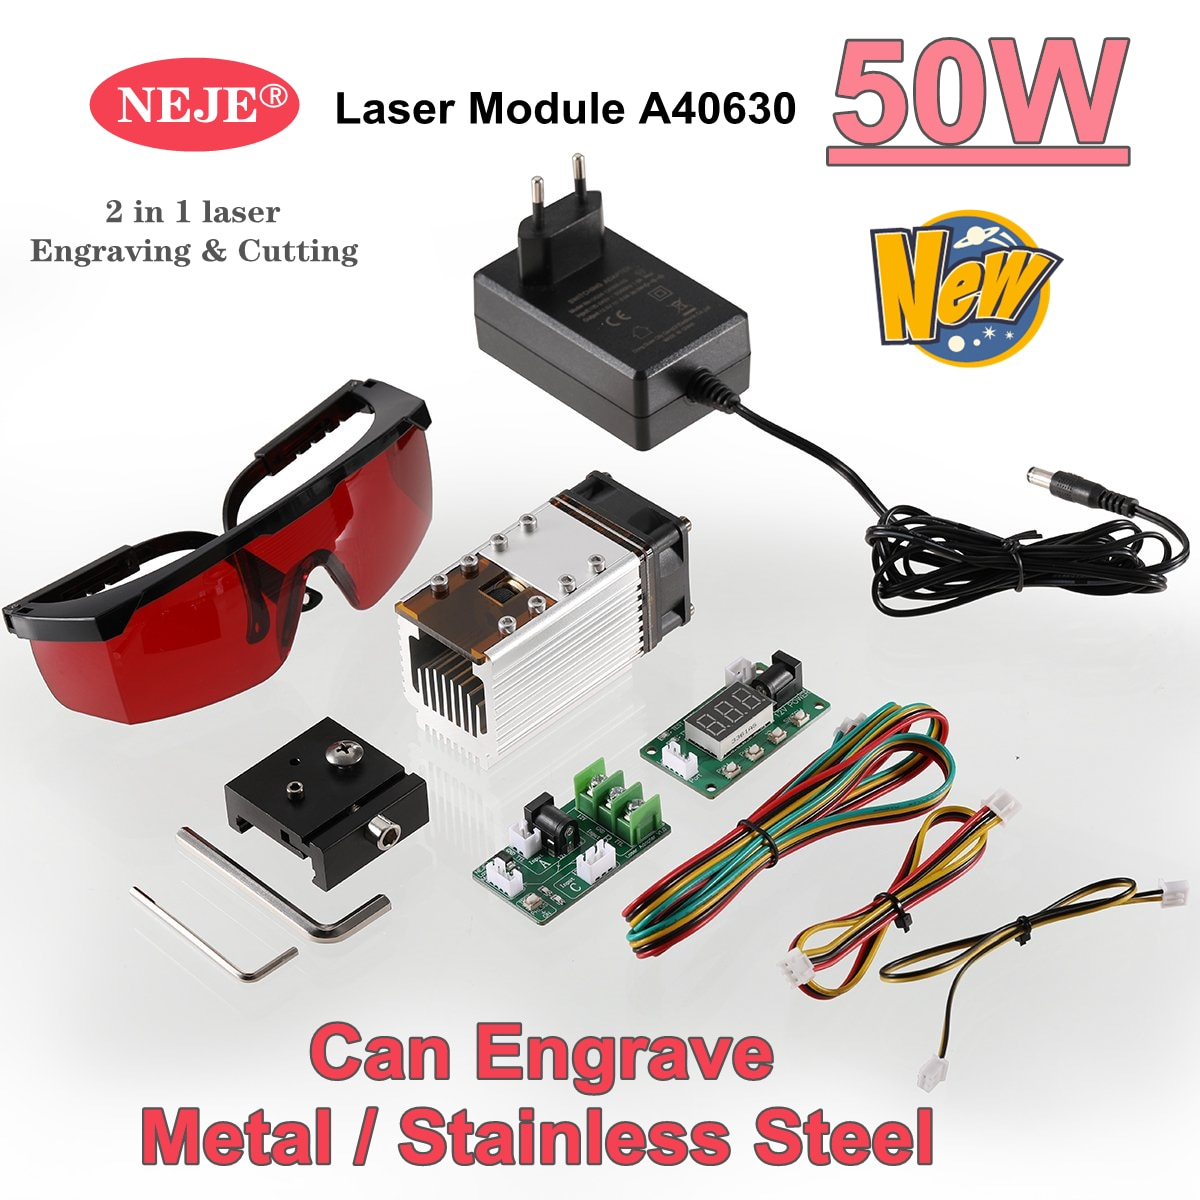 NEW NEJE A40630 50W Laser Module Kits High Speed Engrave Metal/Stainless Steel for Profession CNC Laser Engraver Cutting Machine